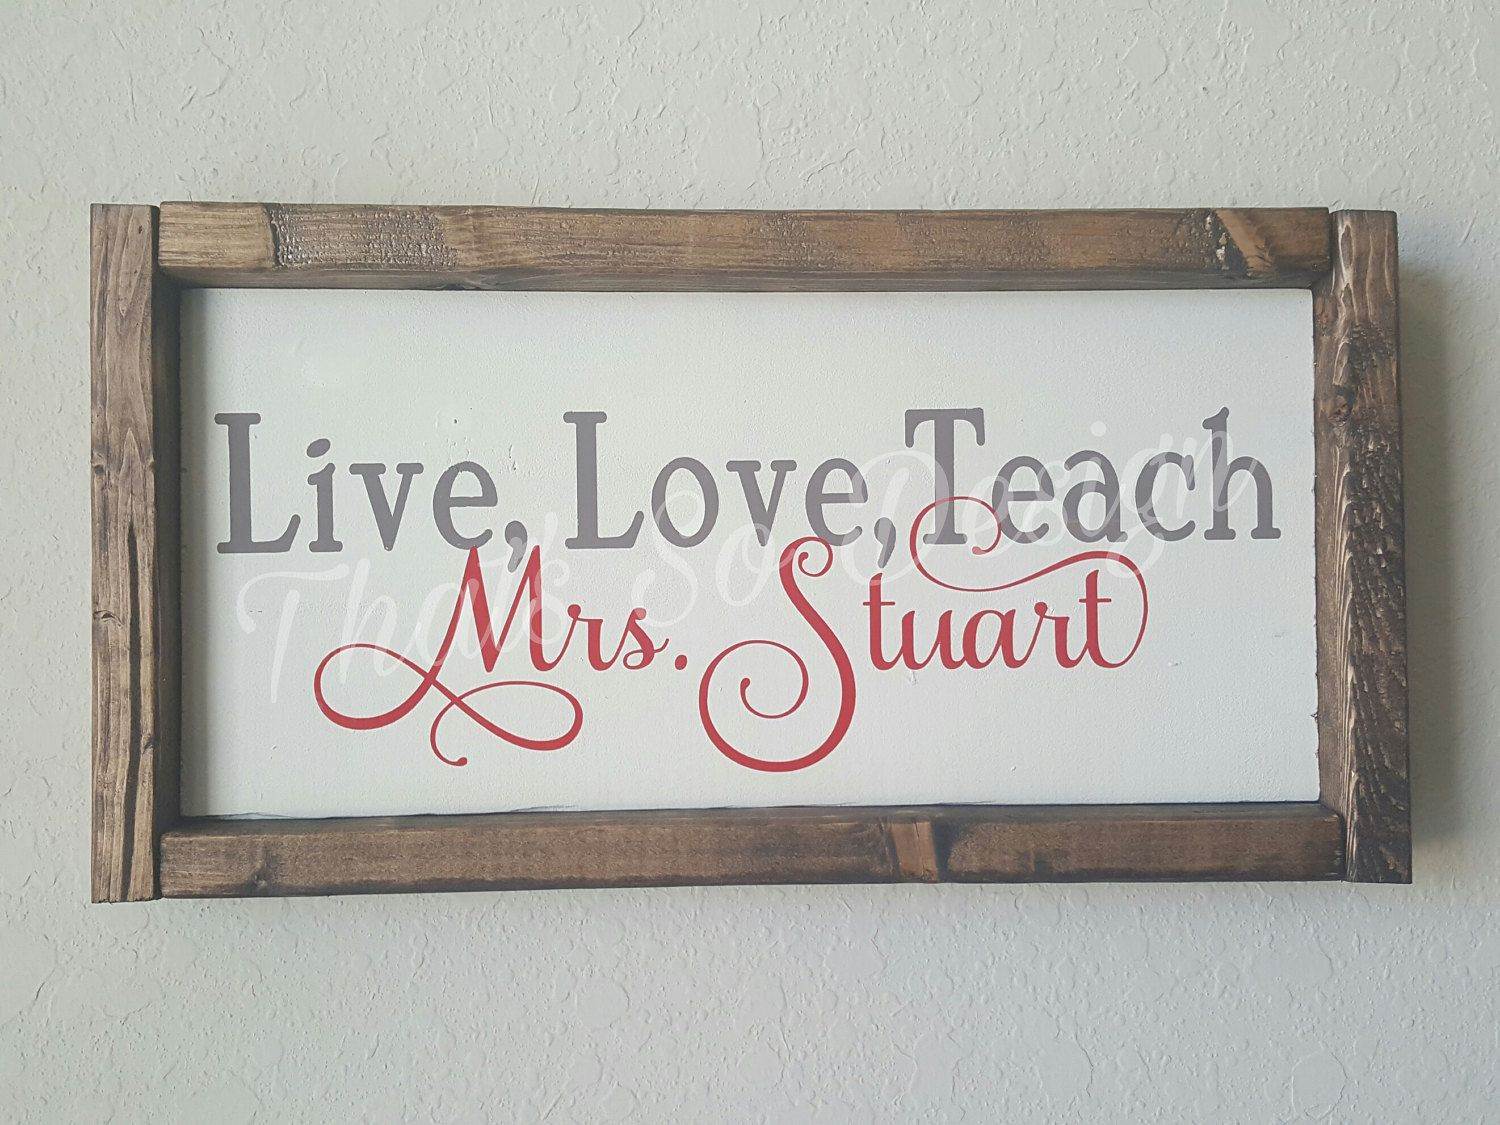 Teacher Sign For Wood Repurposed Circuit Boards Recycled Board Clipboards Live Love Teach Gift Appreciation Wooden Framed By Thatssodesign On Etsy